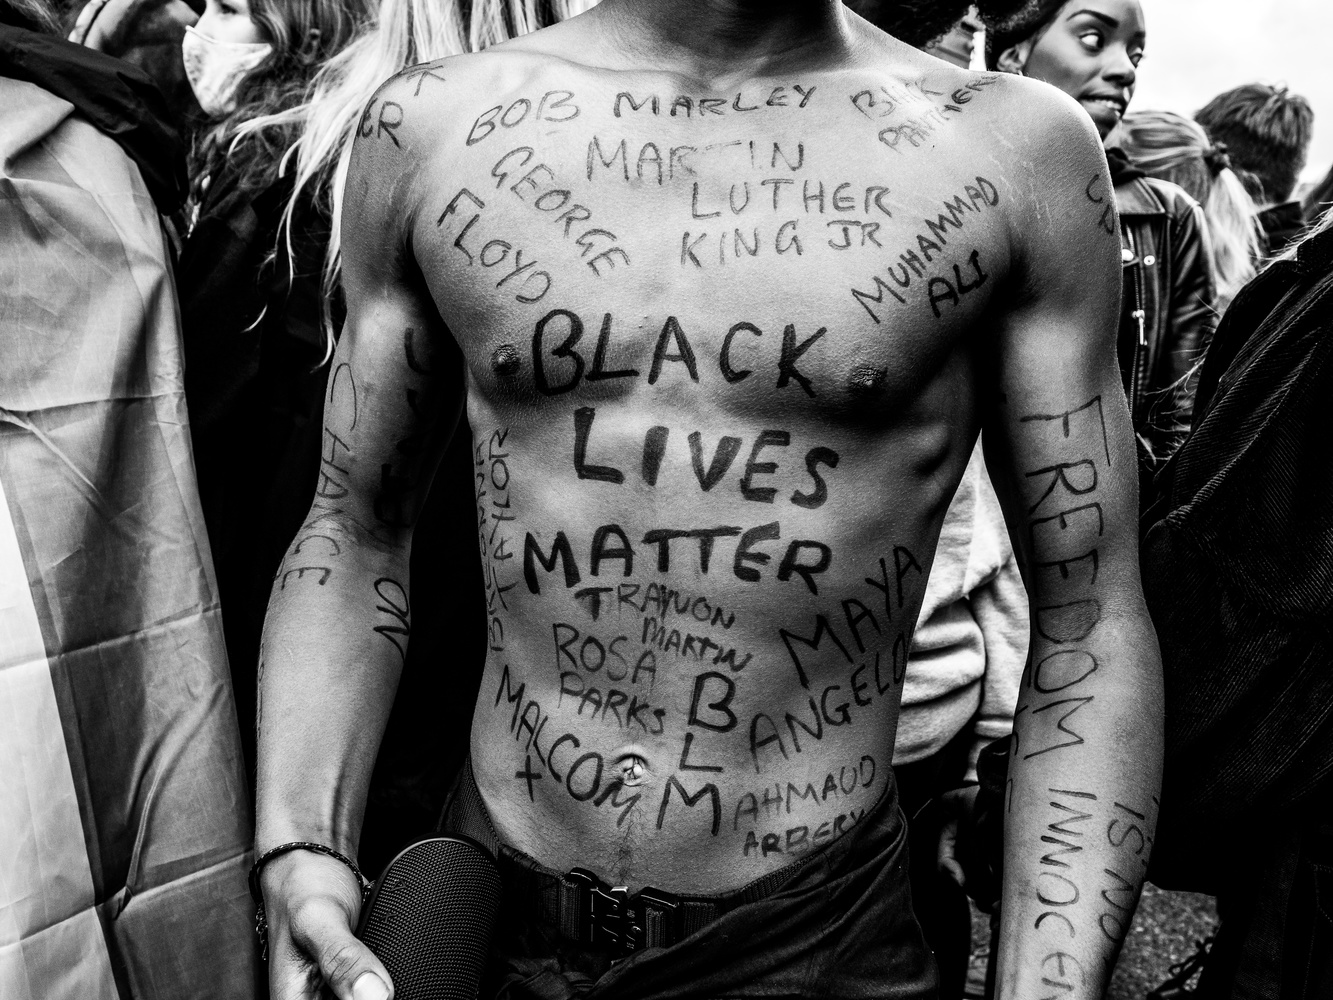 Black Lives Matter protest in London by Tomasz Kowalski